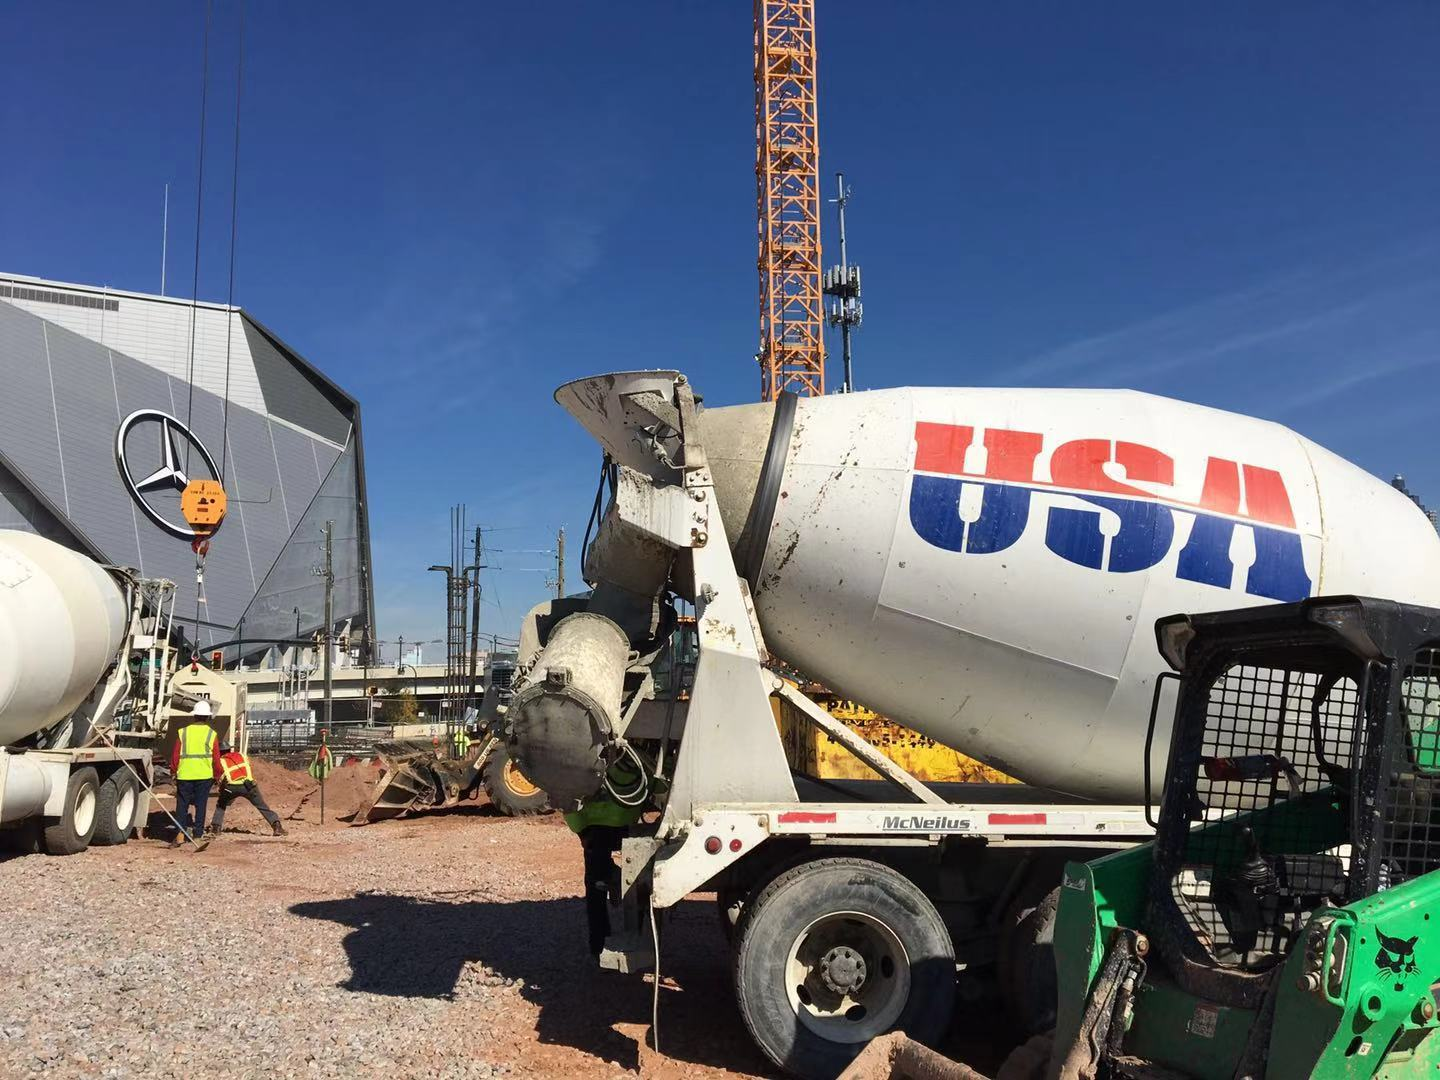 Concrete mixer was on site and pouring concrete